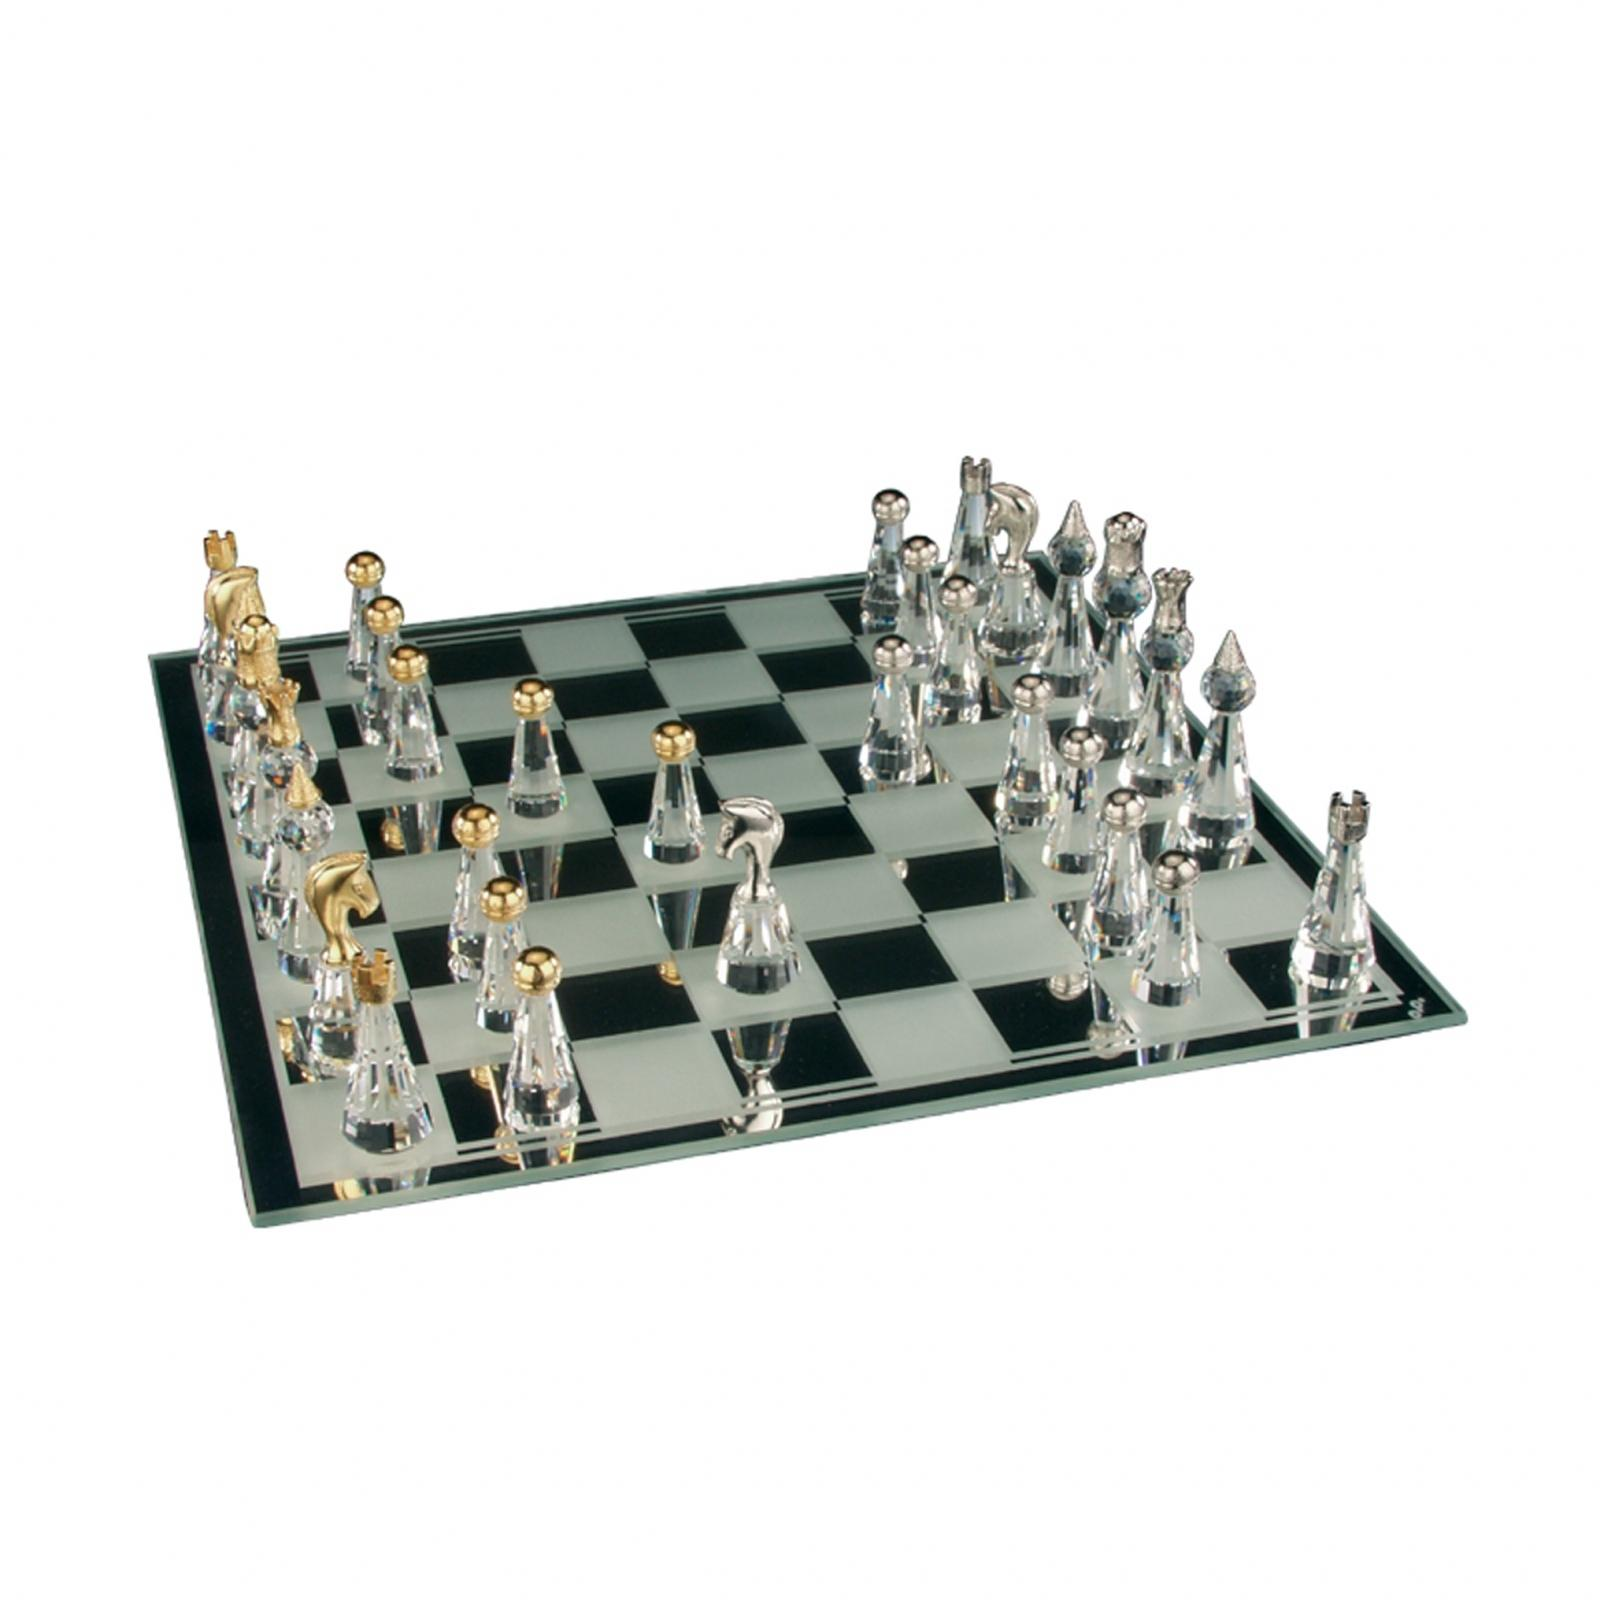 Figurina cristal Preciosa - Chess Set